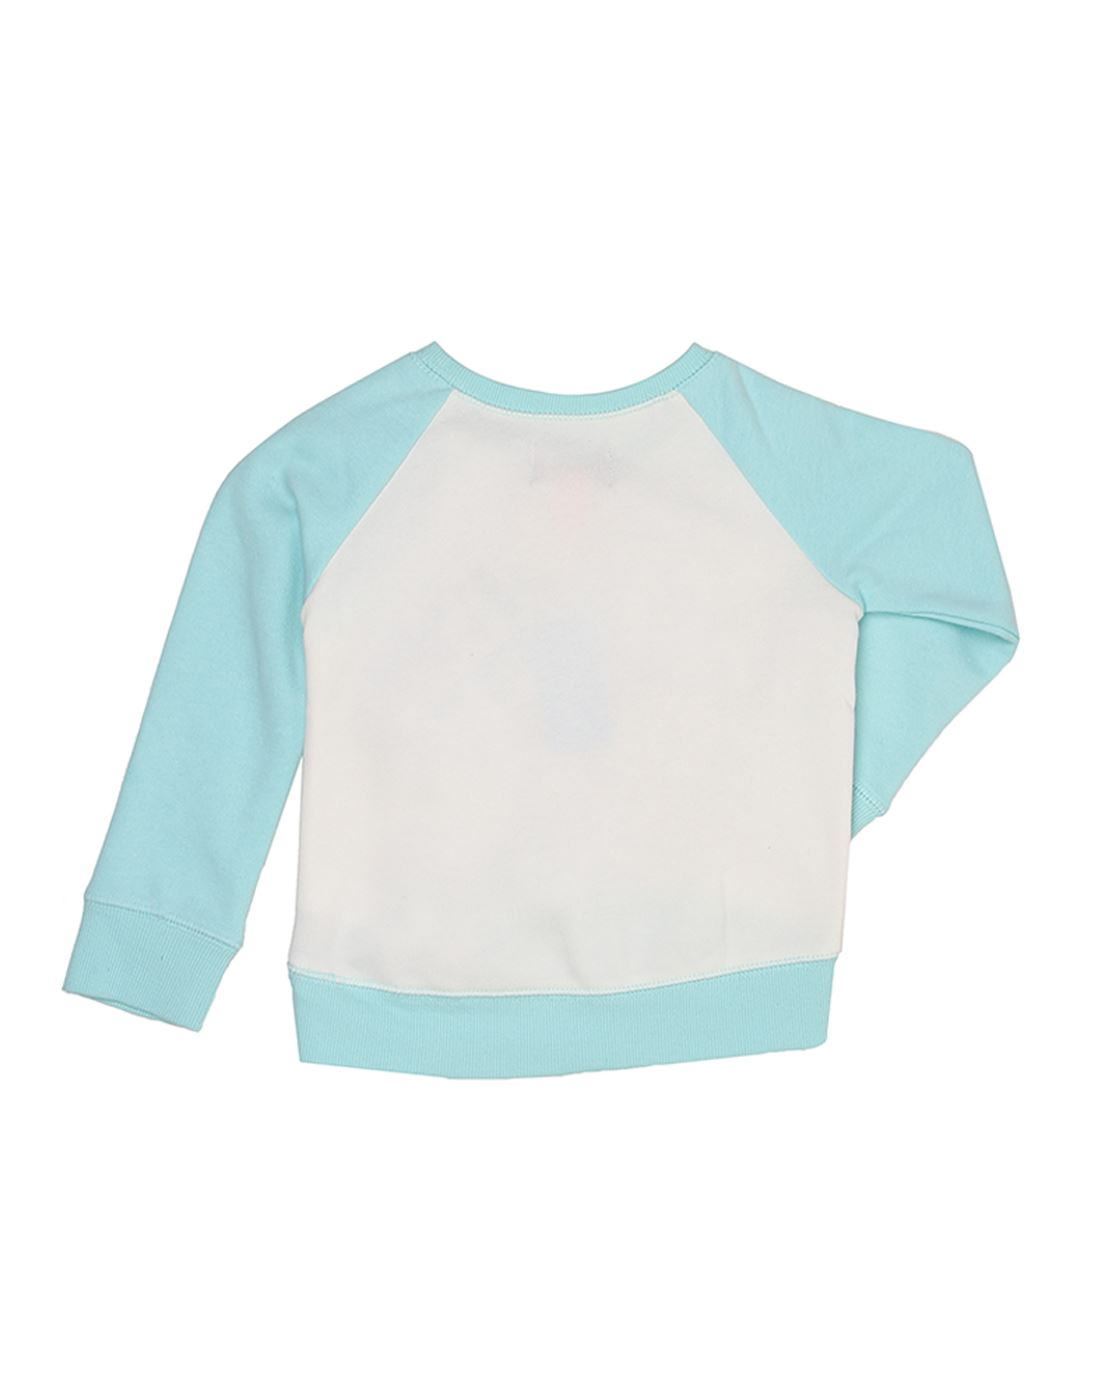 The Children's Place Girls Casual Wear Graphic Print Top